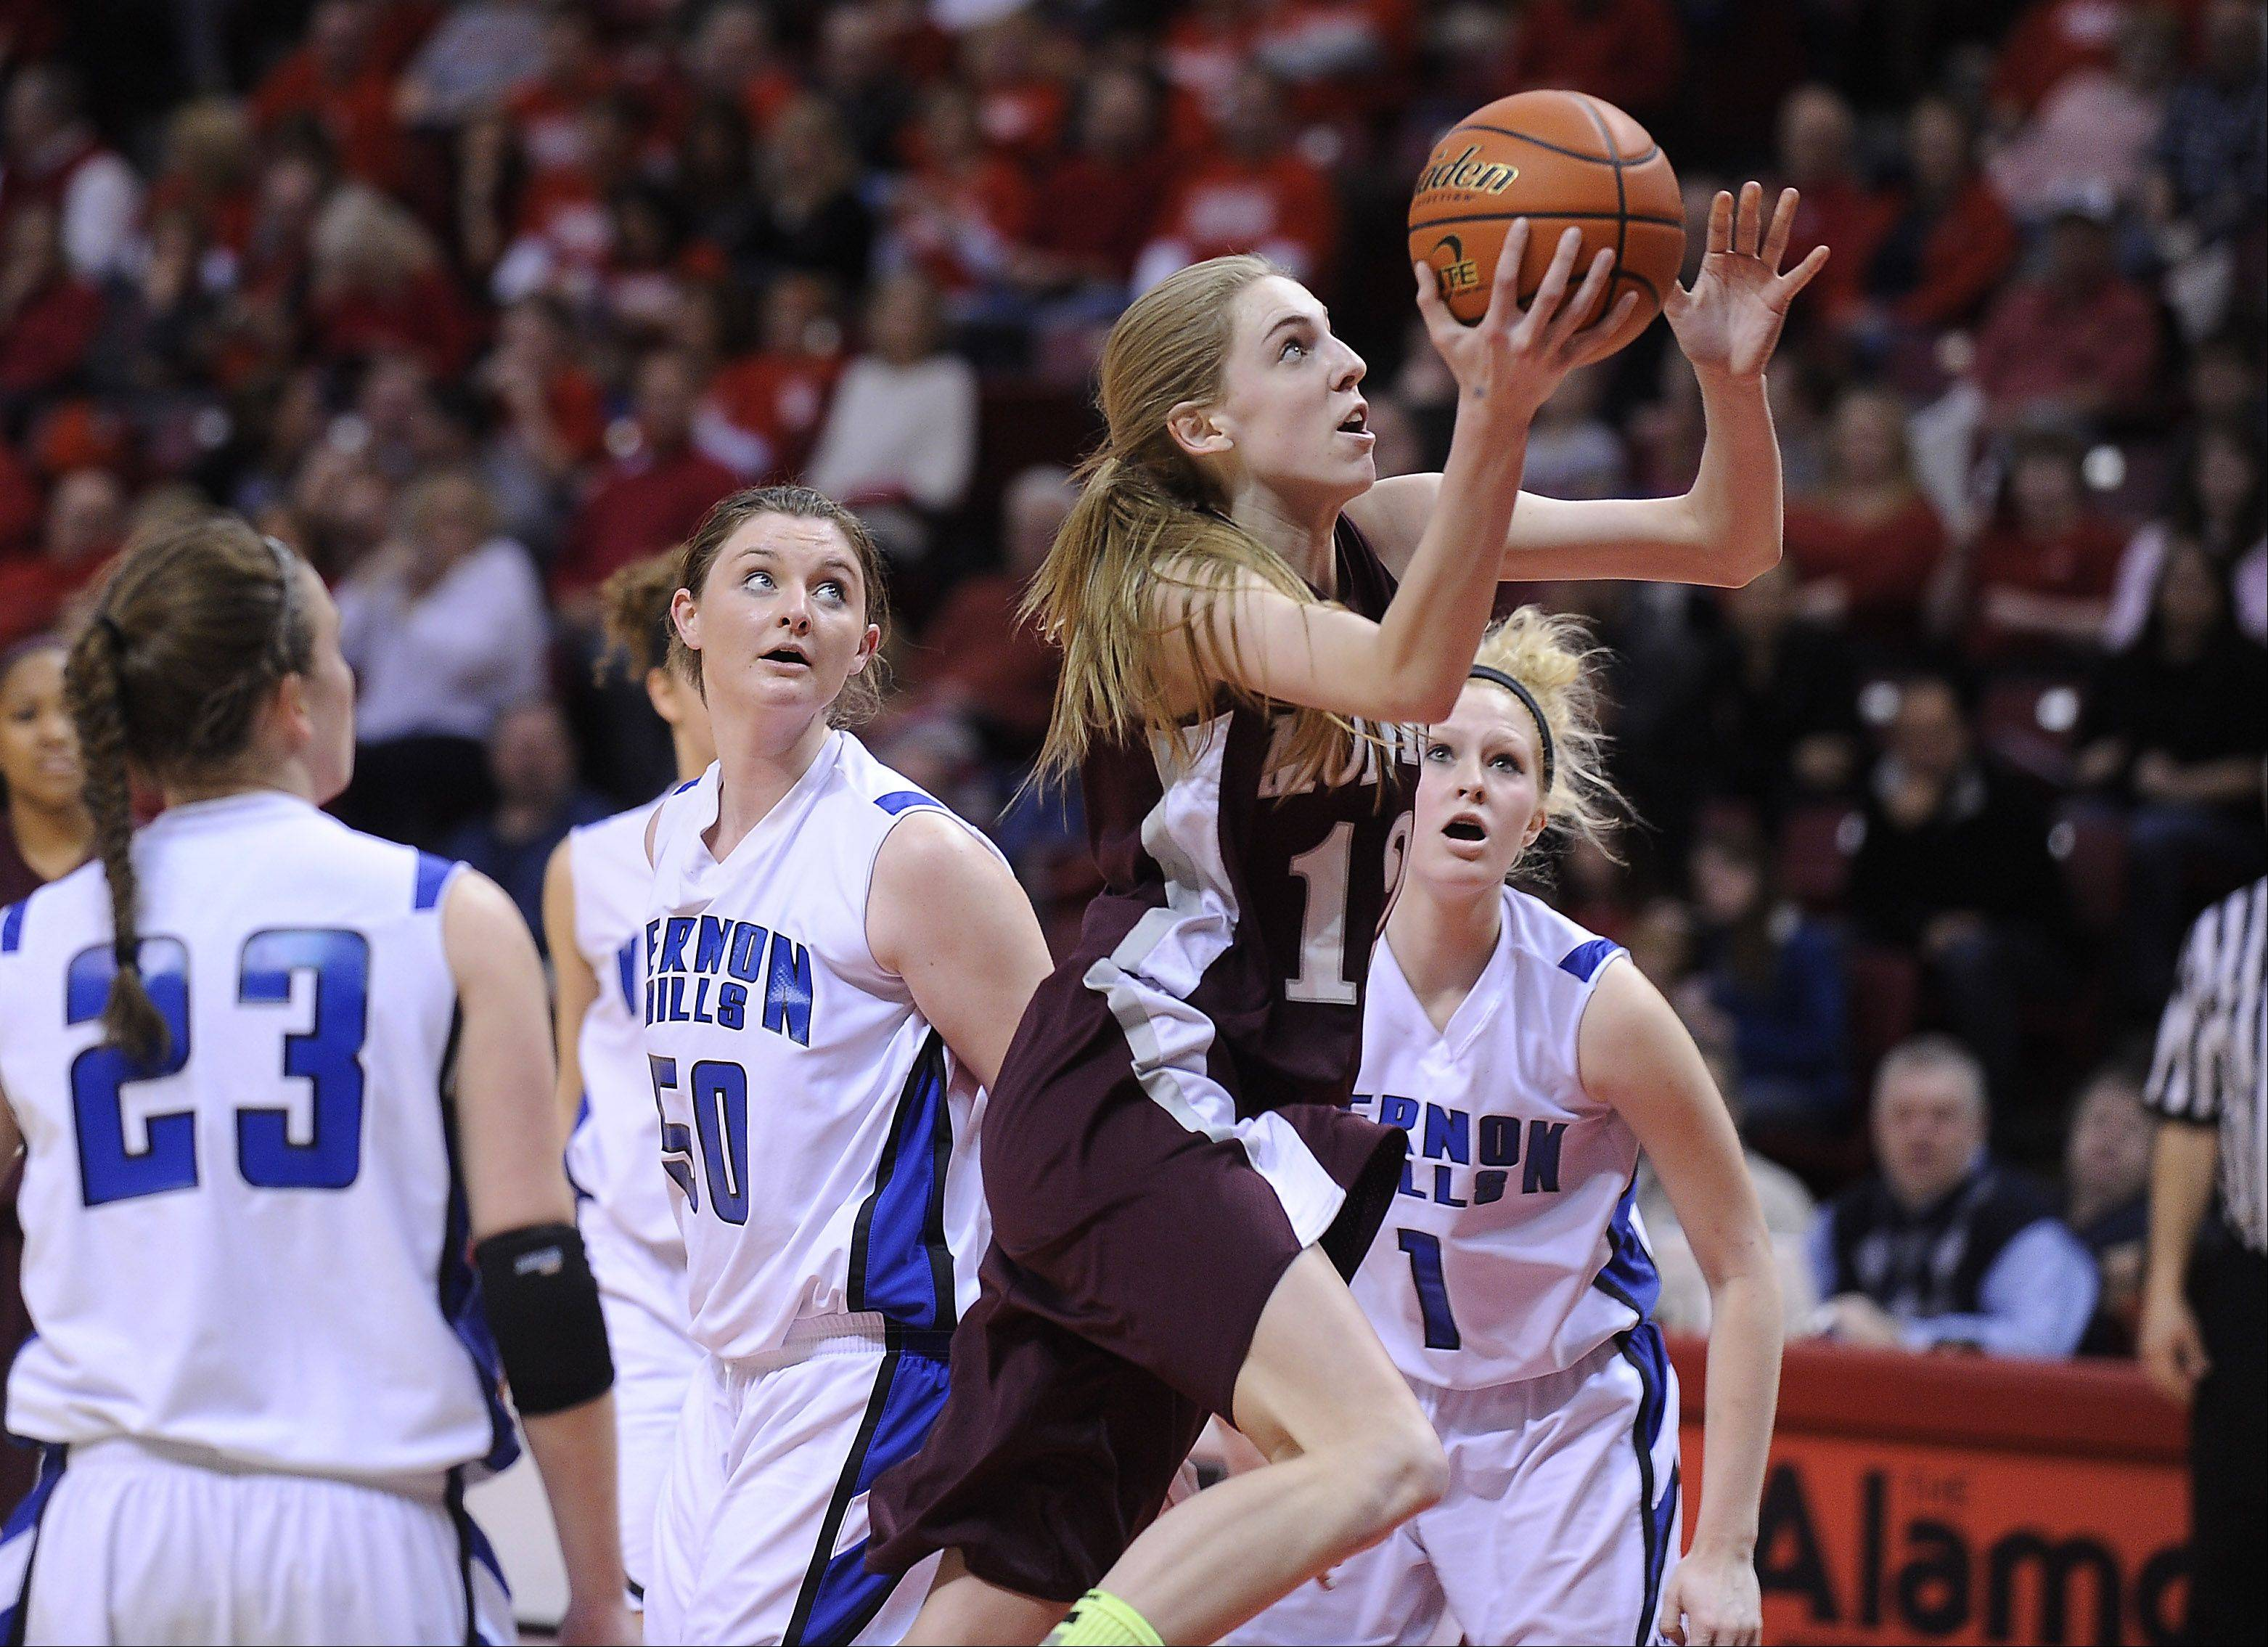 Montini's Kelly Karlis eyes the basket in the third quarter.